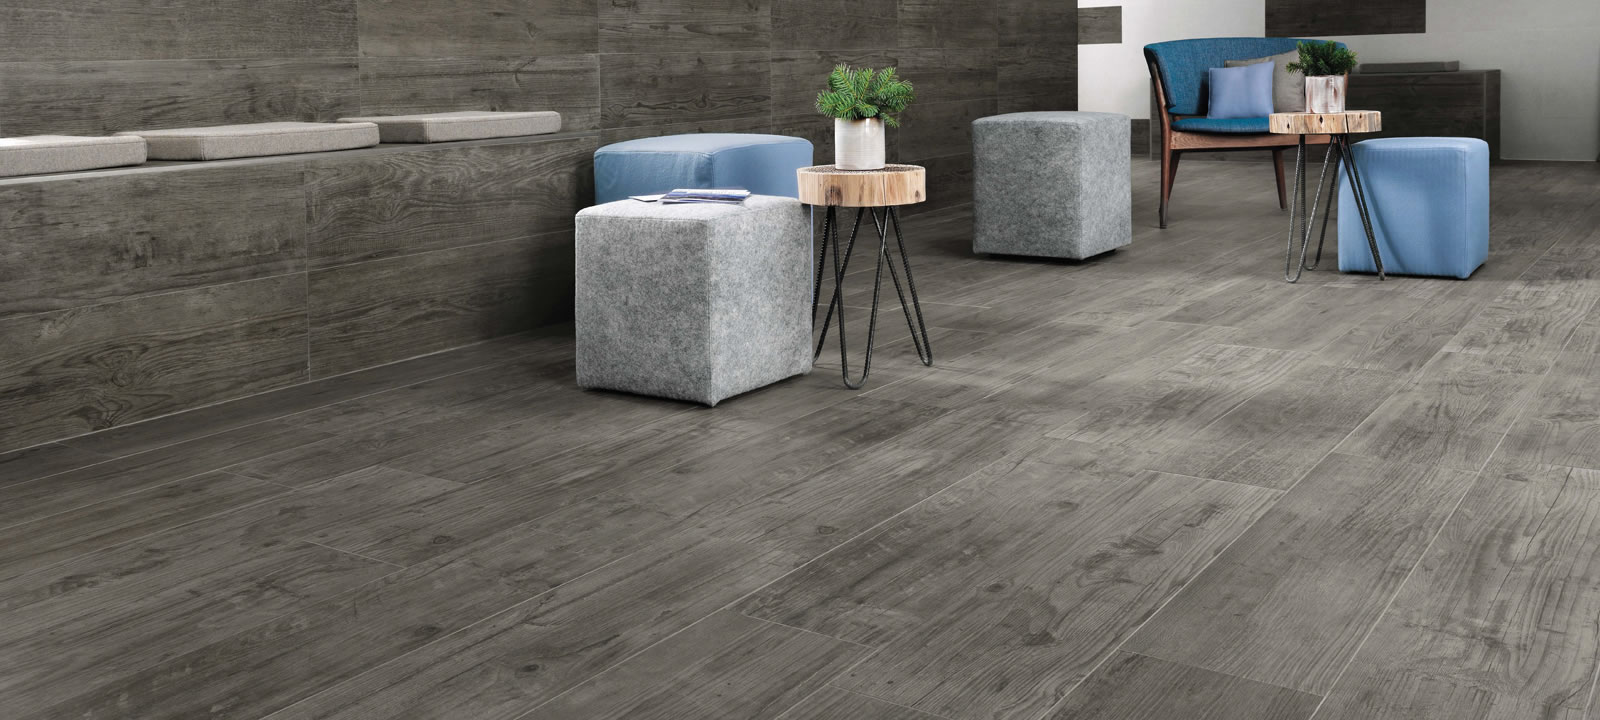 Minoli Axis Grey Timber Grey Wood Effect Tile 00